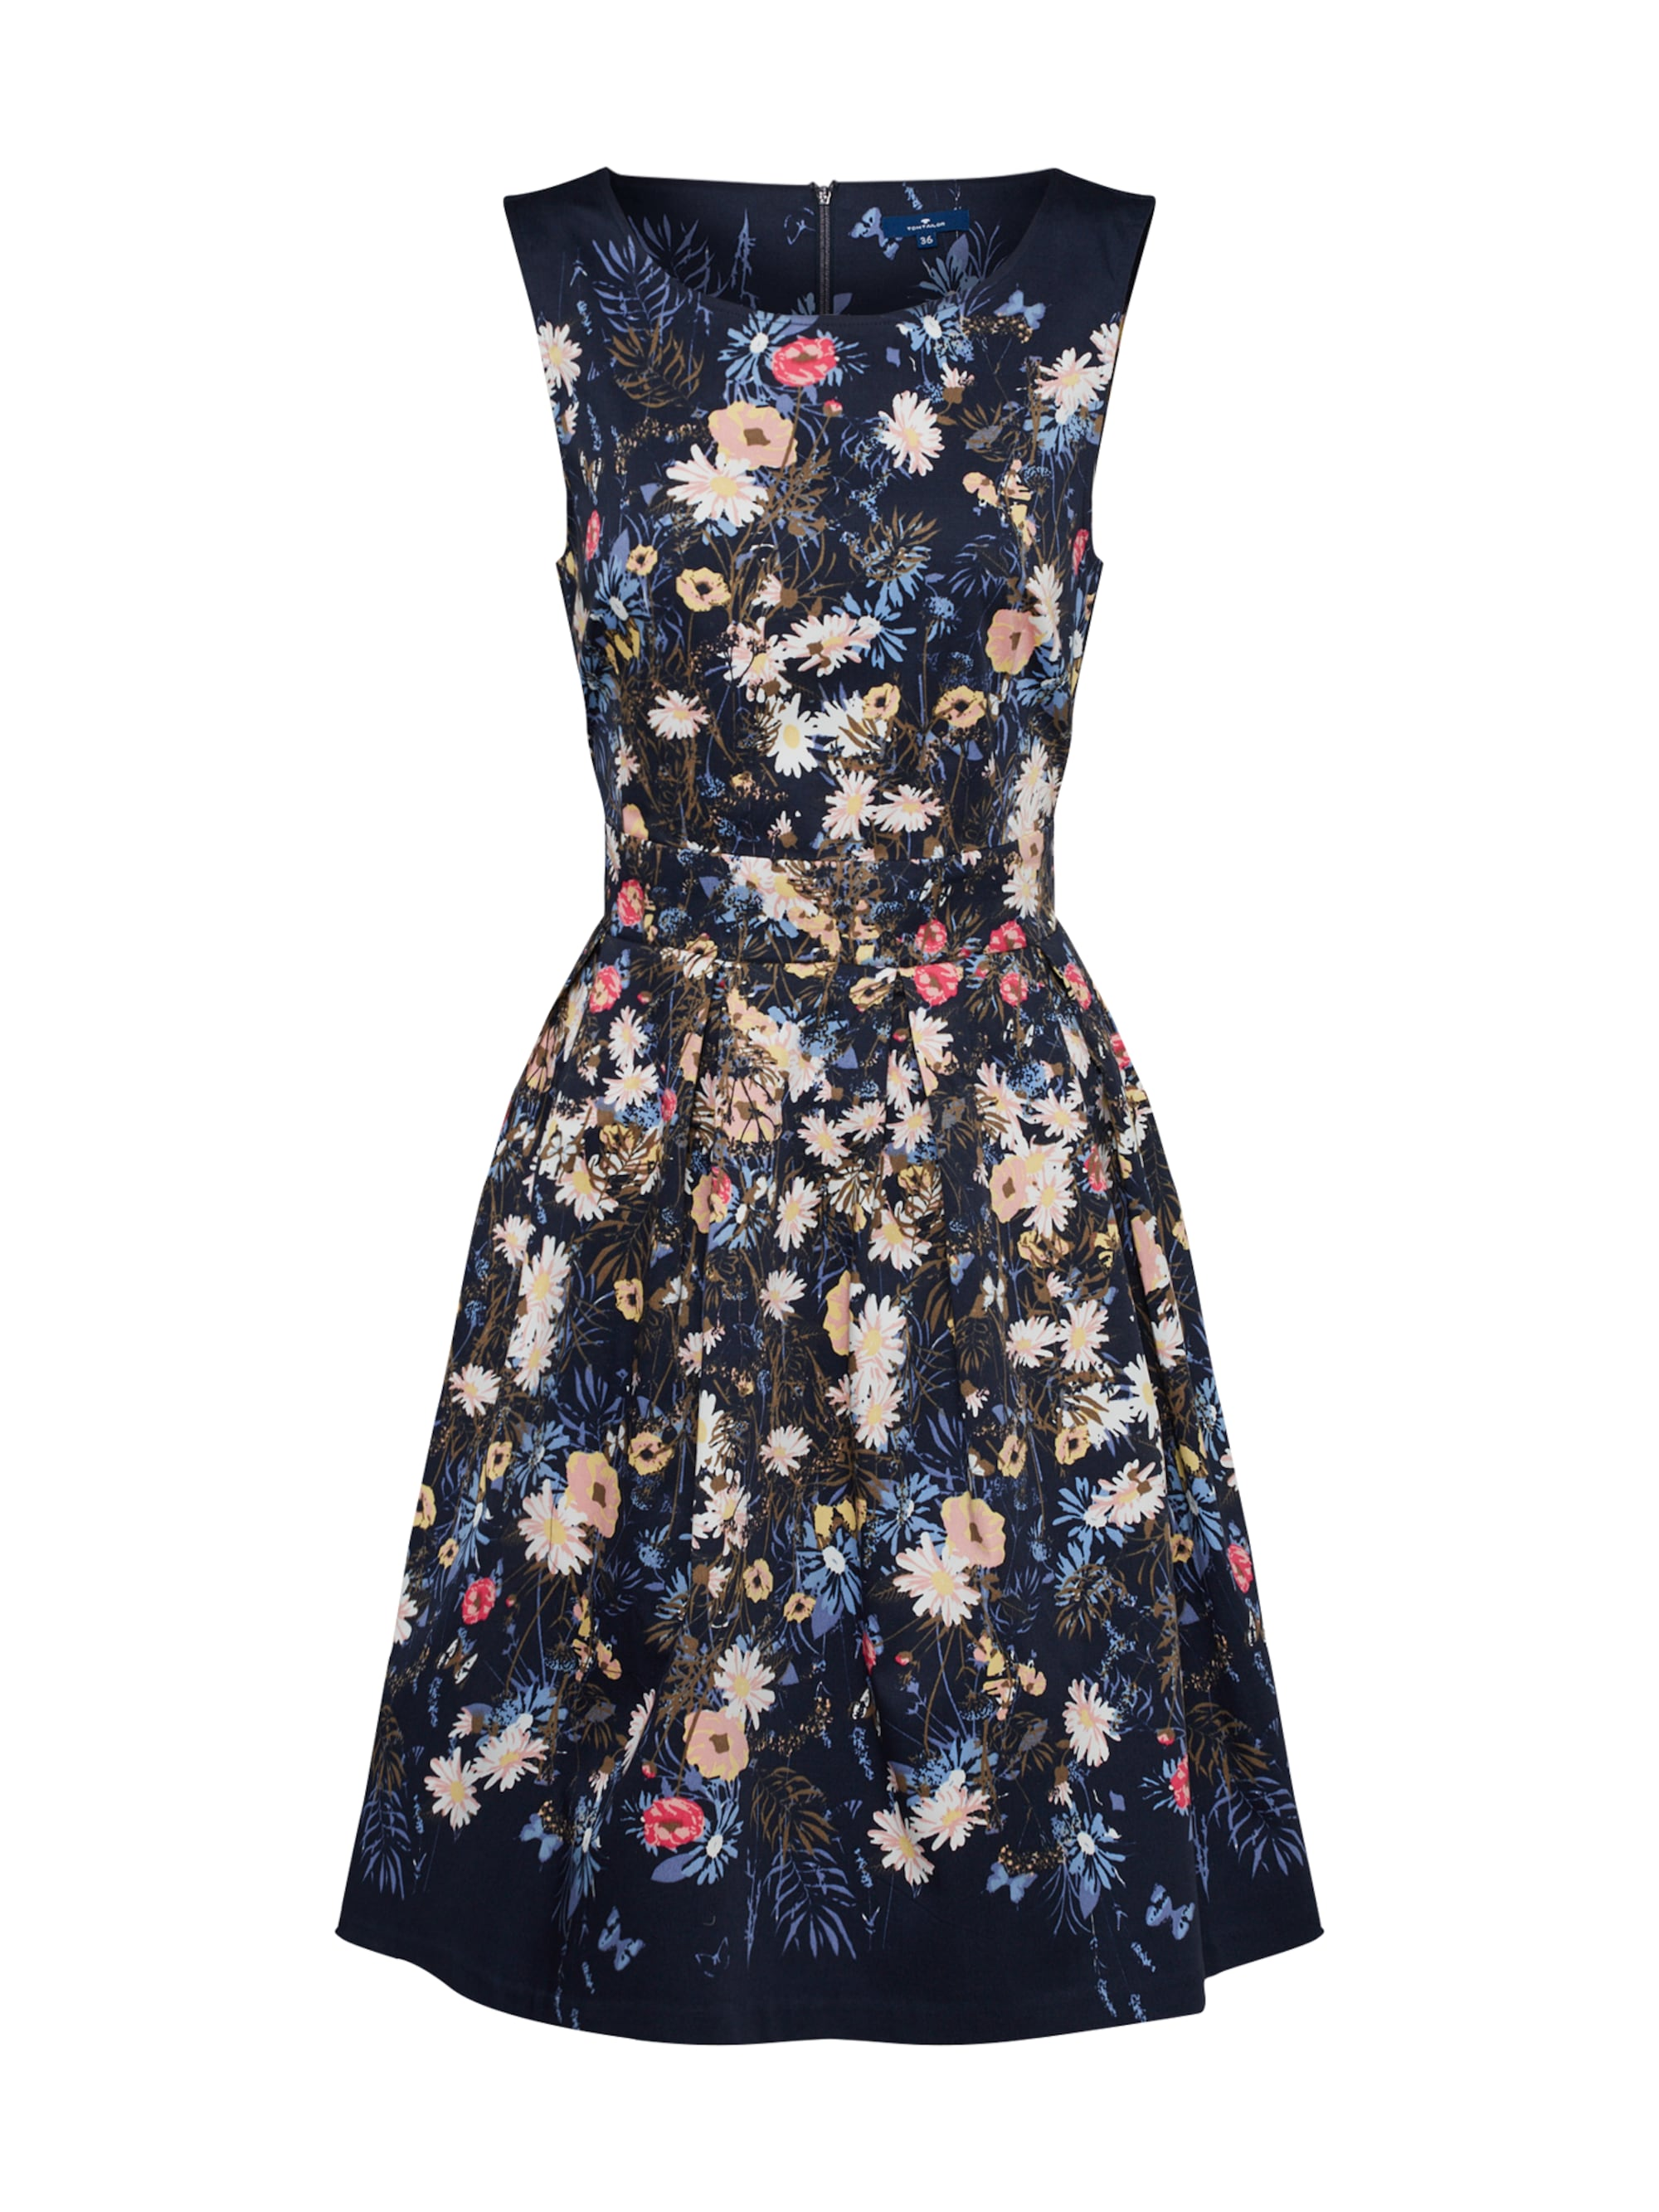 Dress ´romantic flower´